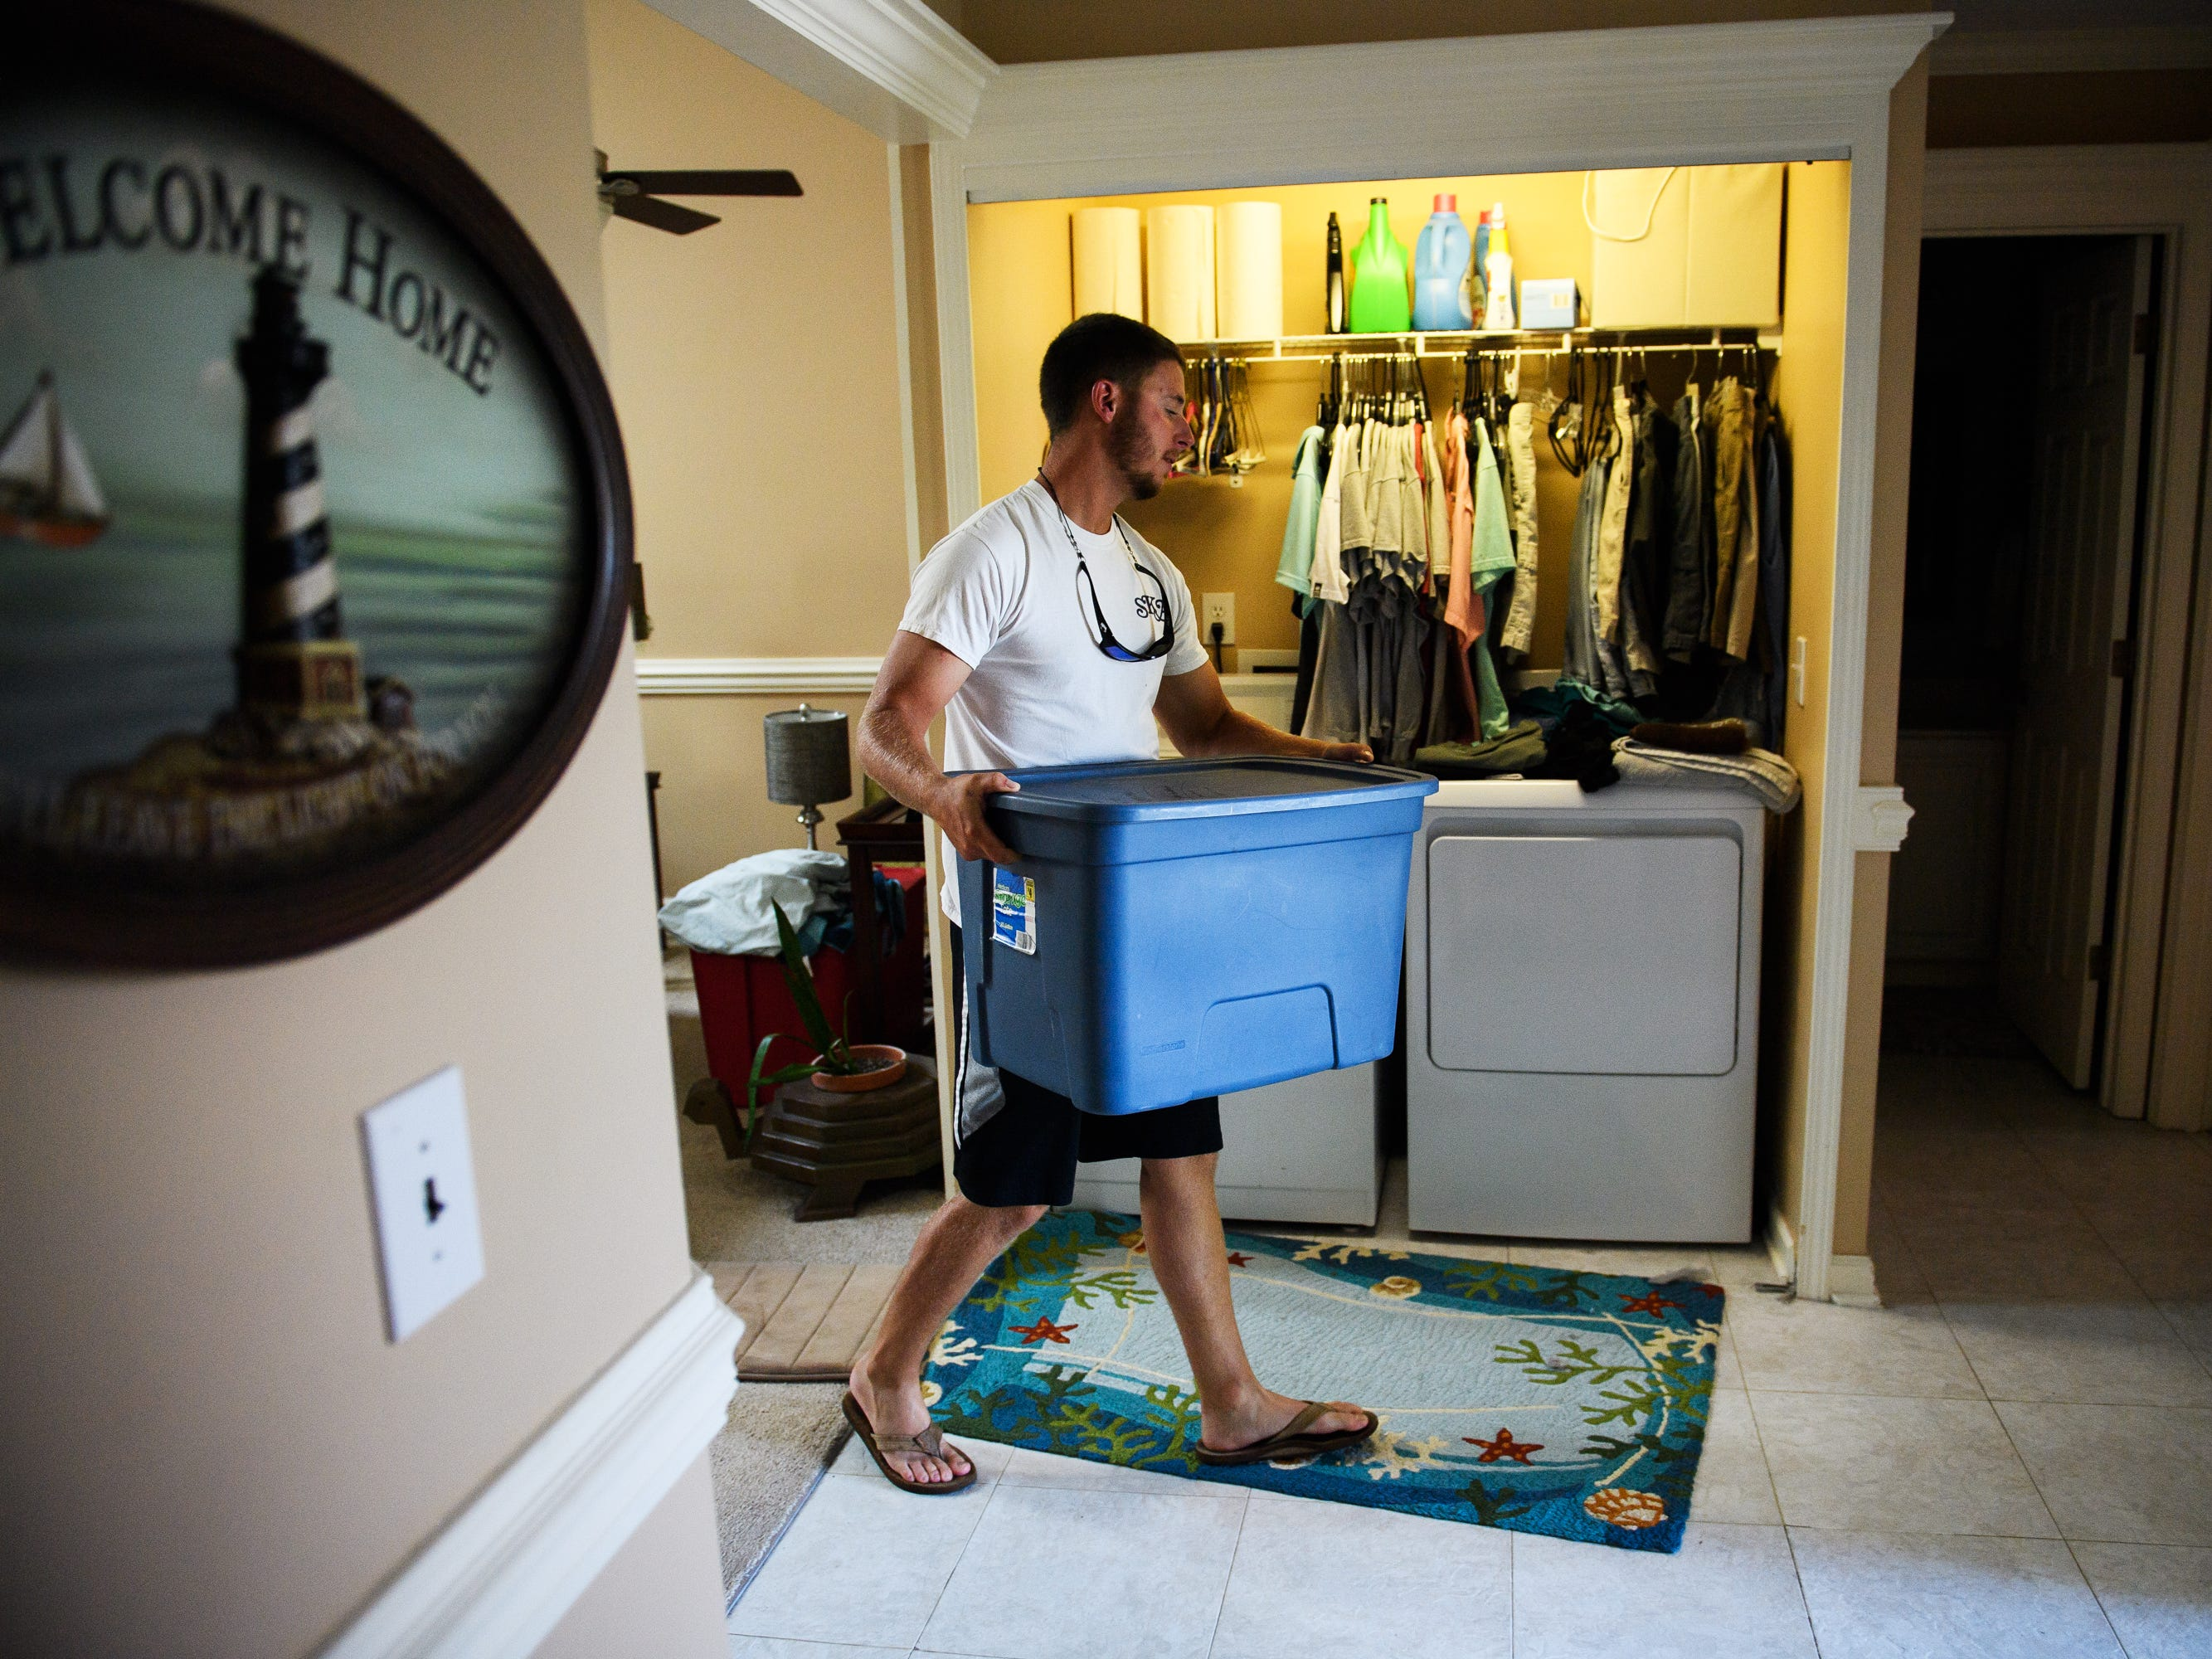 Jesse Prince packs up necessities as he prepares to evacuate his home in North Myrtle Beach to Florida in anticipation of Hurricane Florence on Wednesday, Sept. 12, 2018.